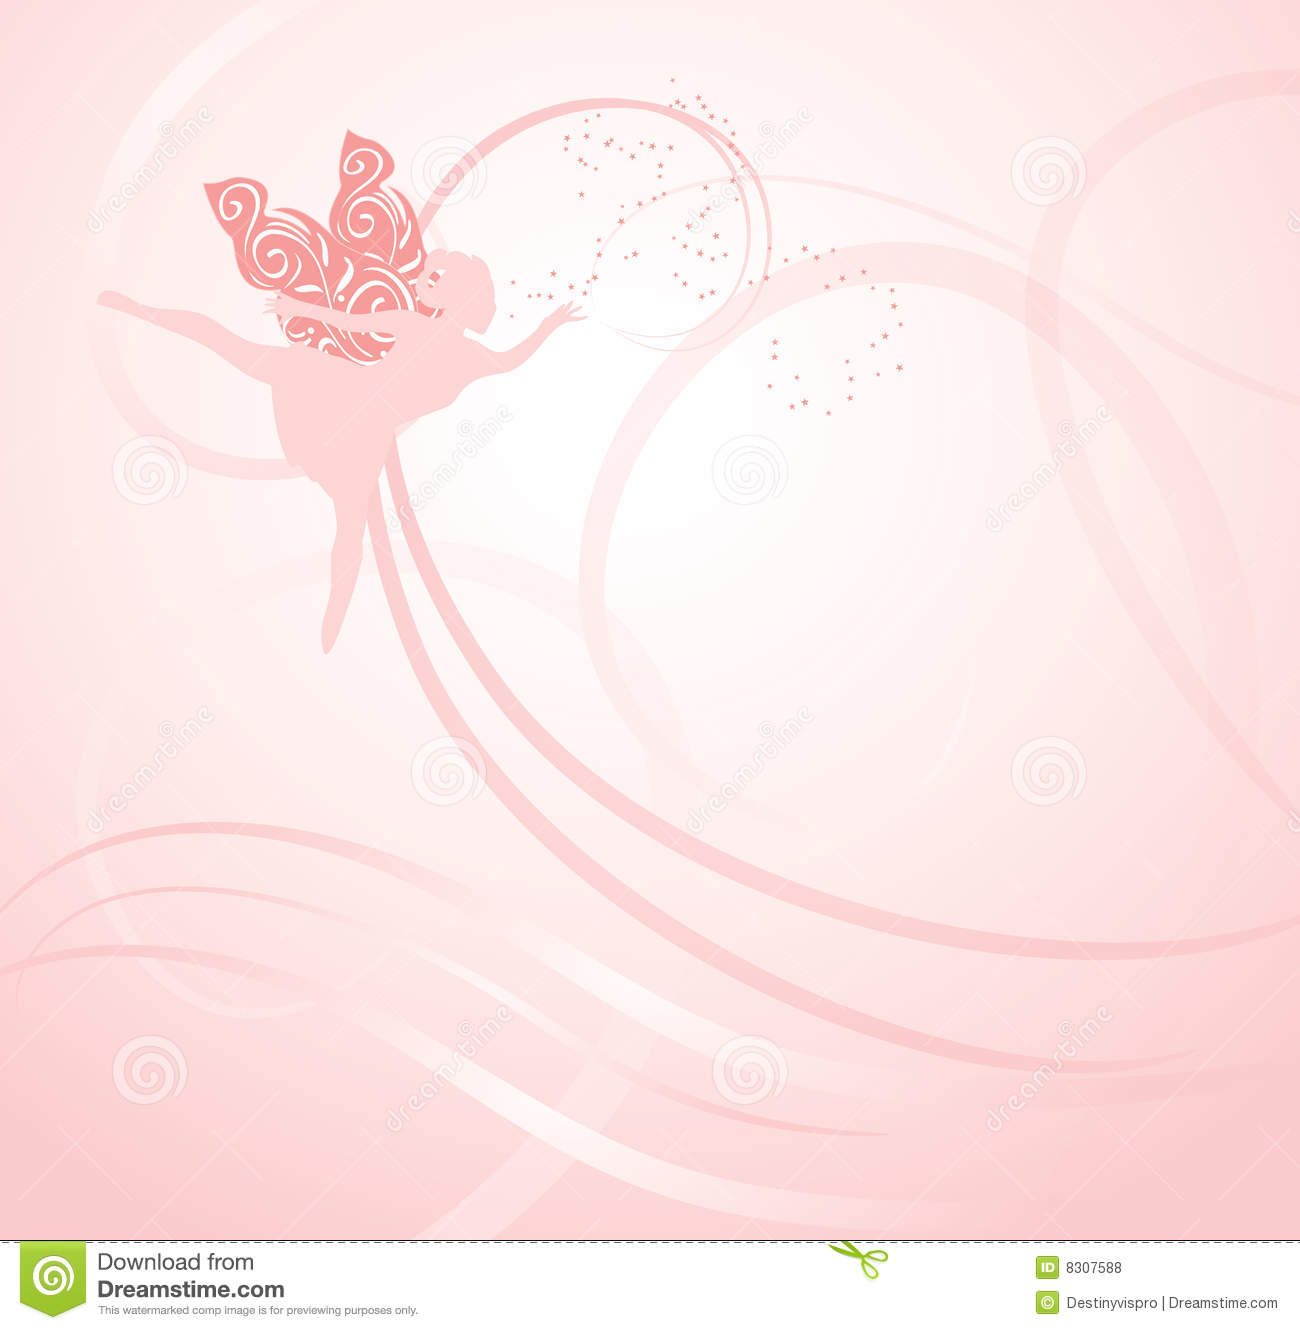 Tinker Bell Invitation is Lovely Template To Make Fresh Invitations Card